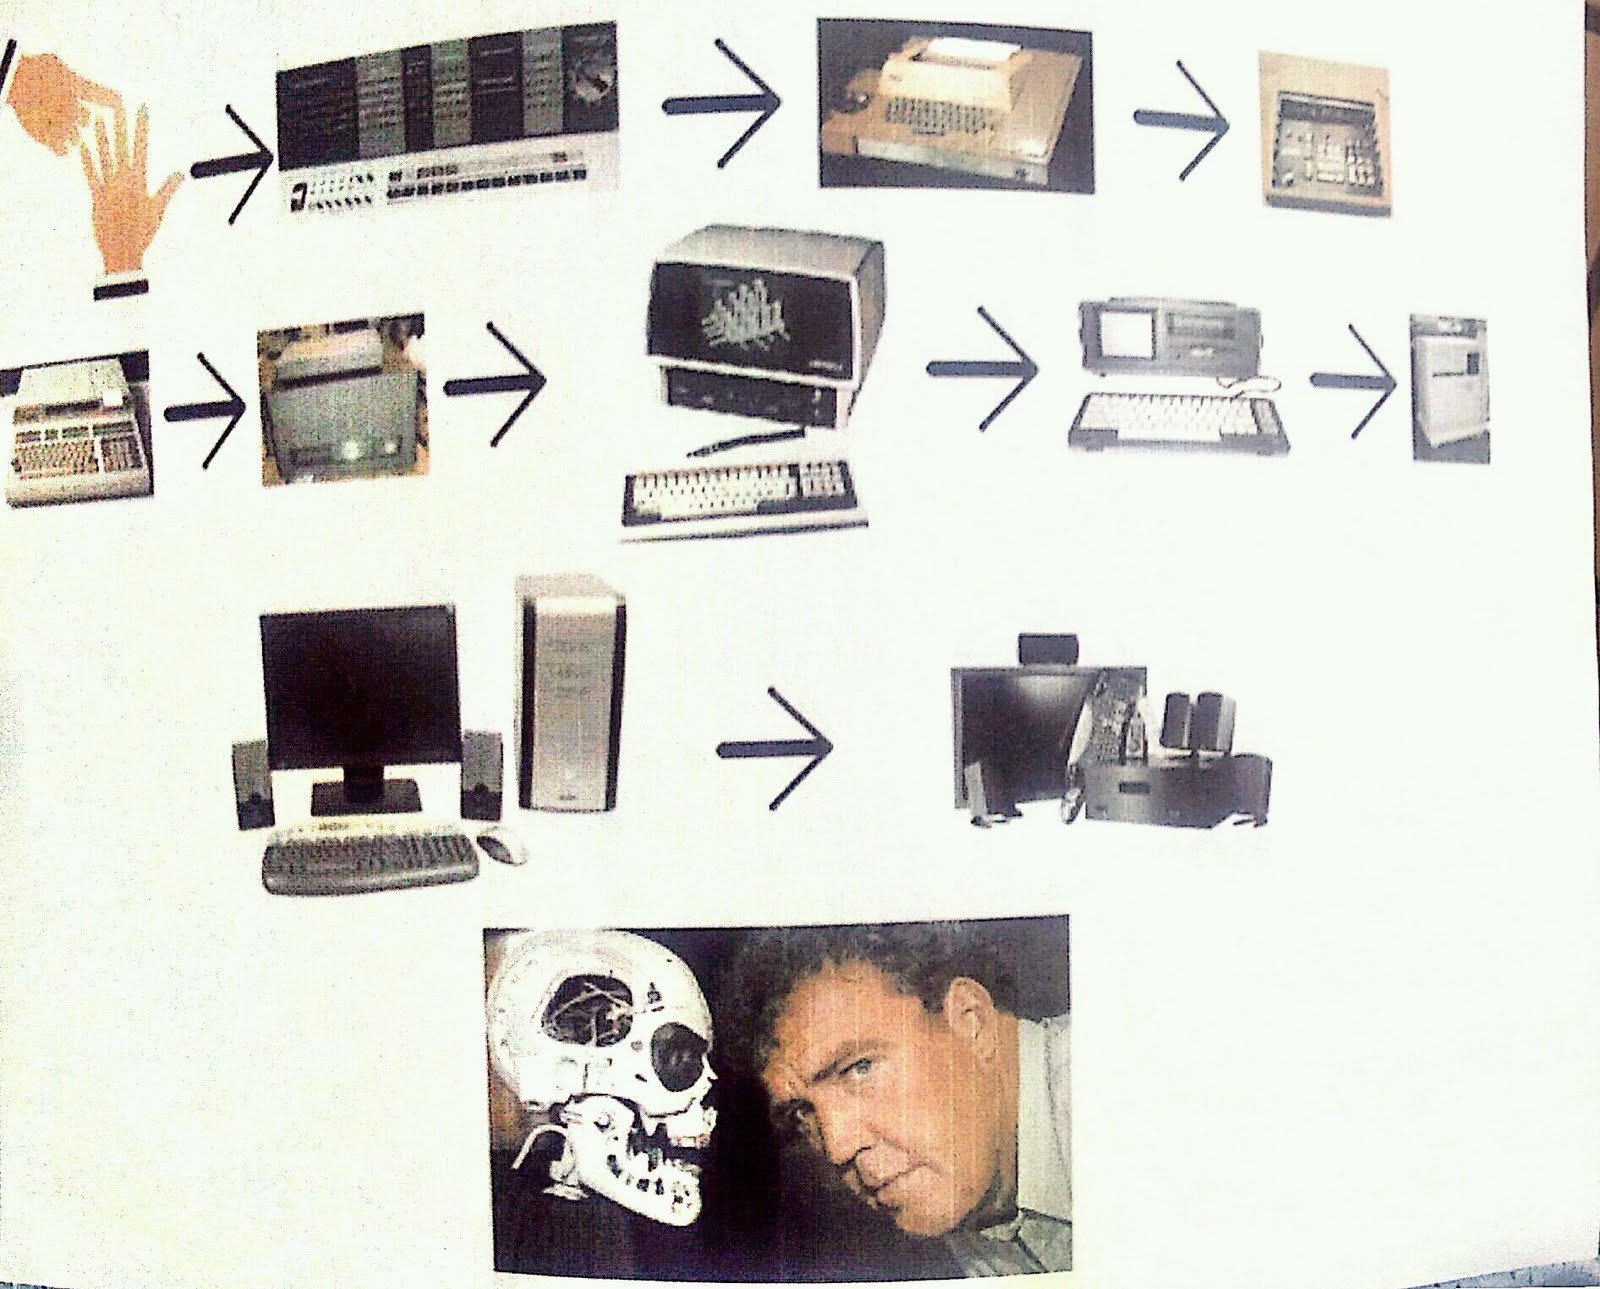 Evolution of the Personal Computer (PC)